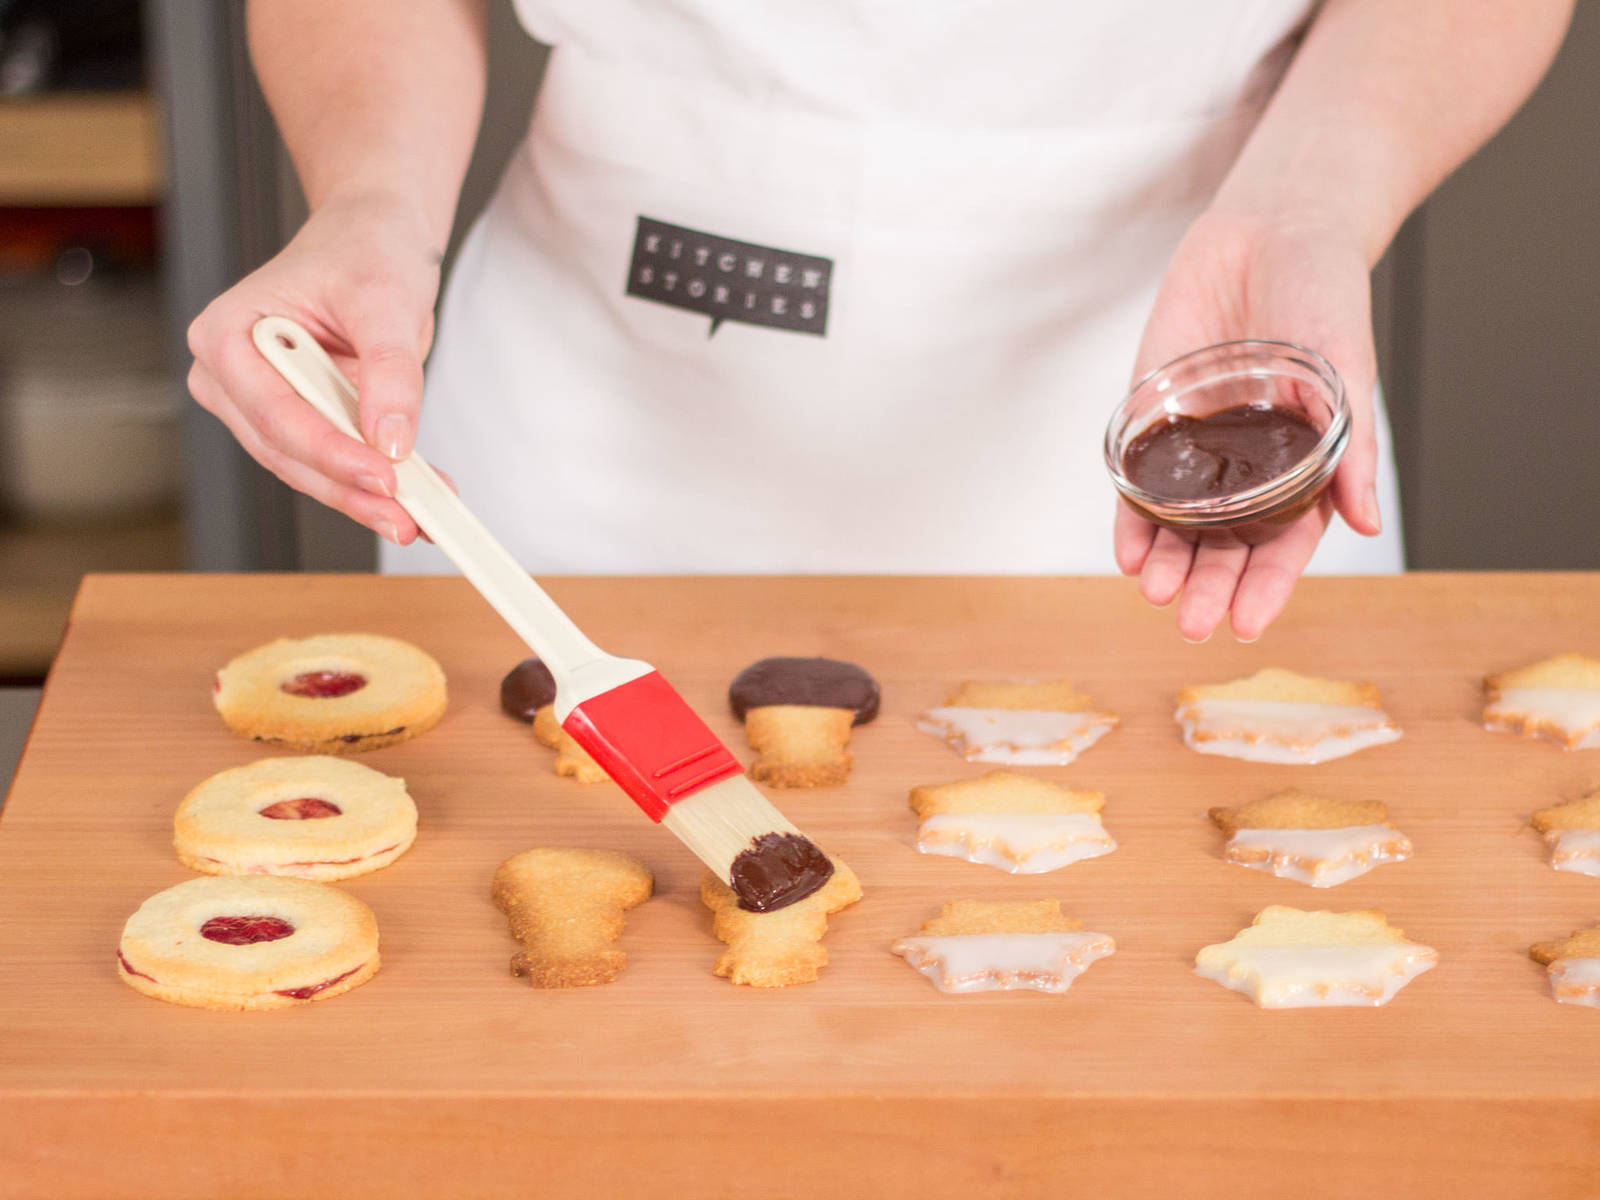 Remove cookies from oven. Set aside for approx. 5 min. until they are cool to the touch. Brush the Christmas-themed cookies either with chocolate or lemon glaze. Sprinkle some confectioner's sugar over jam cookies before serving. Enjoy!